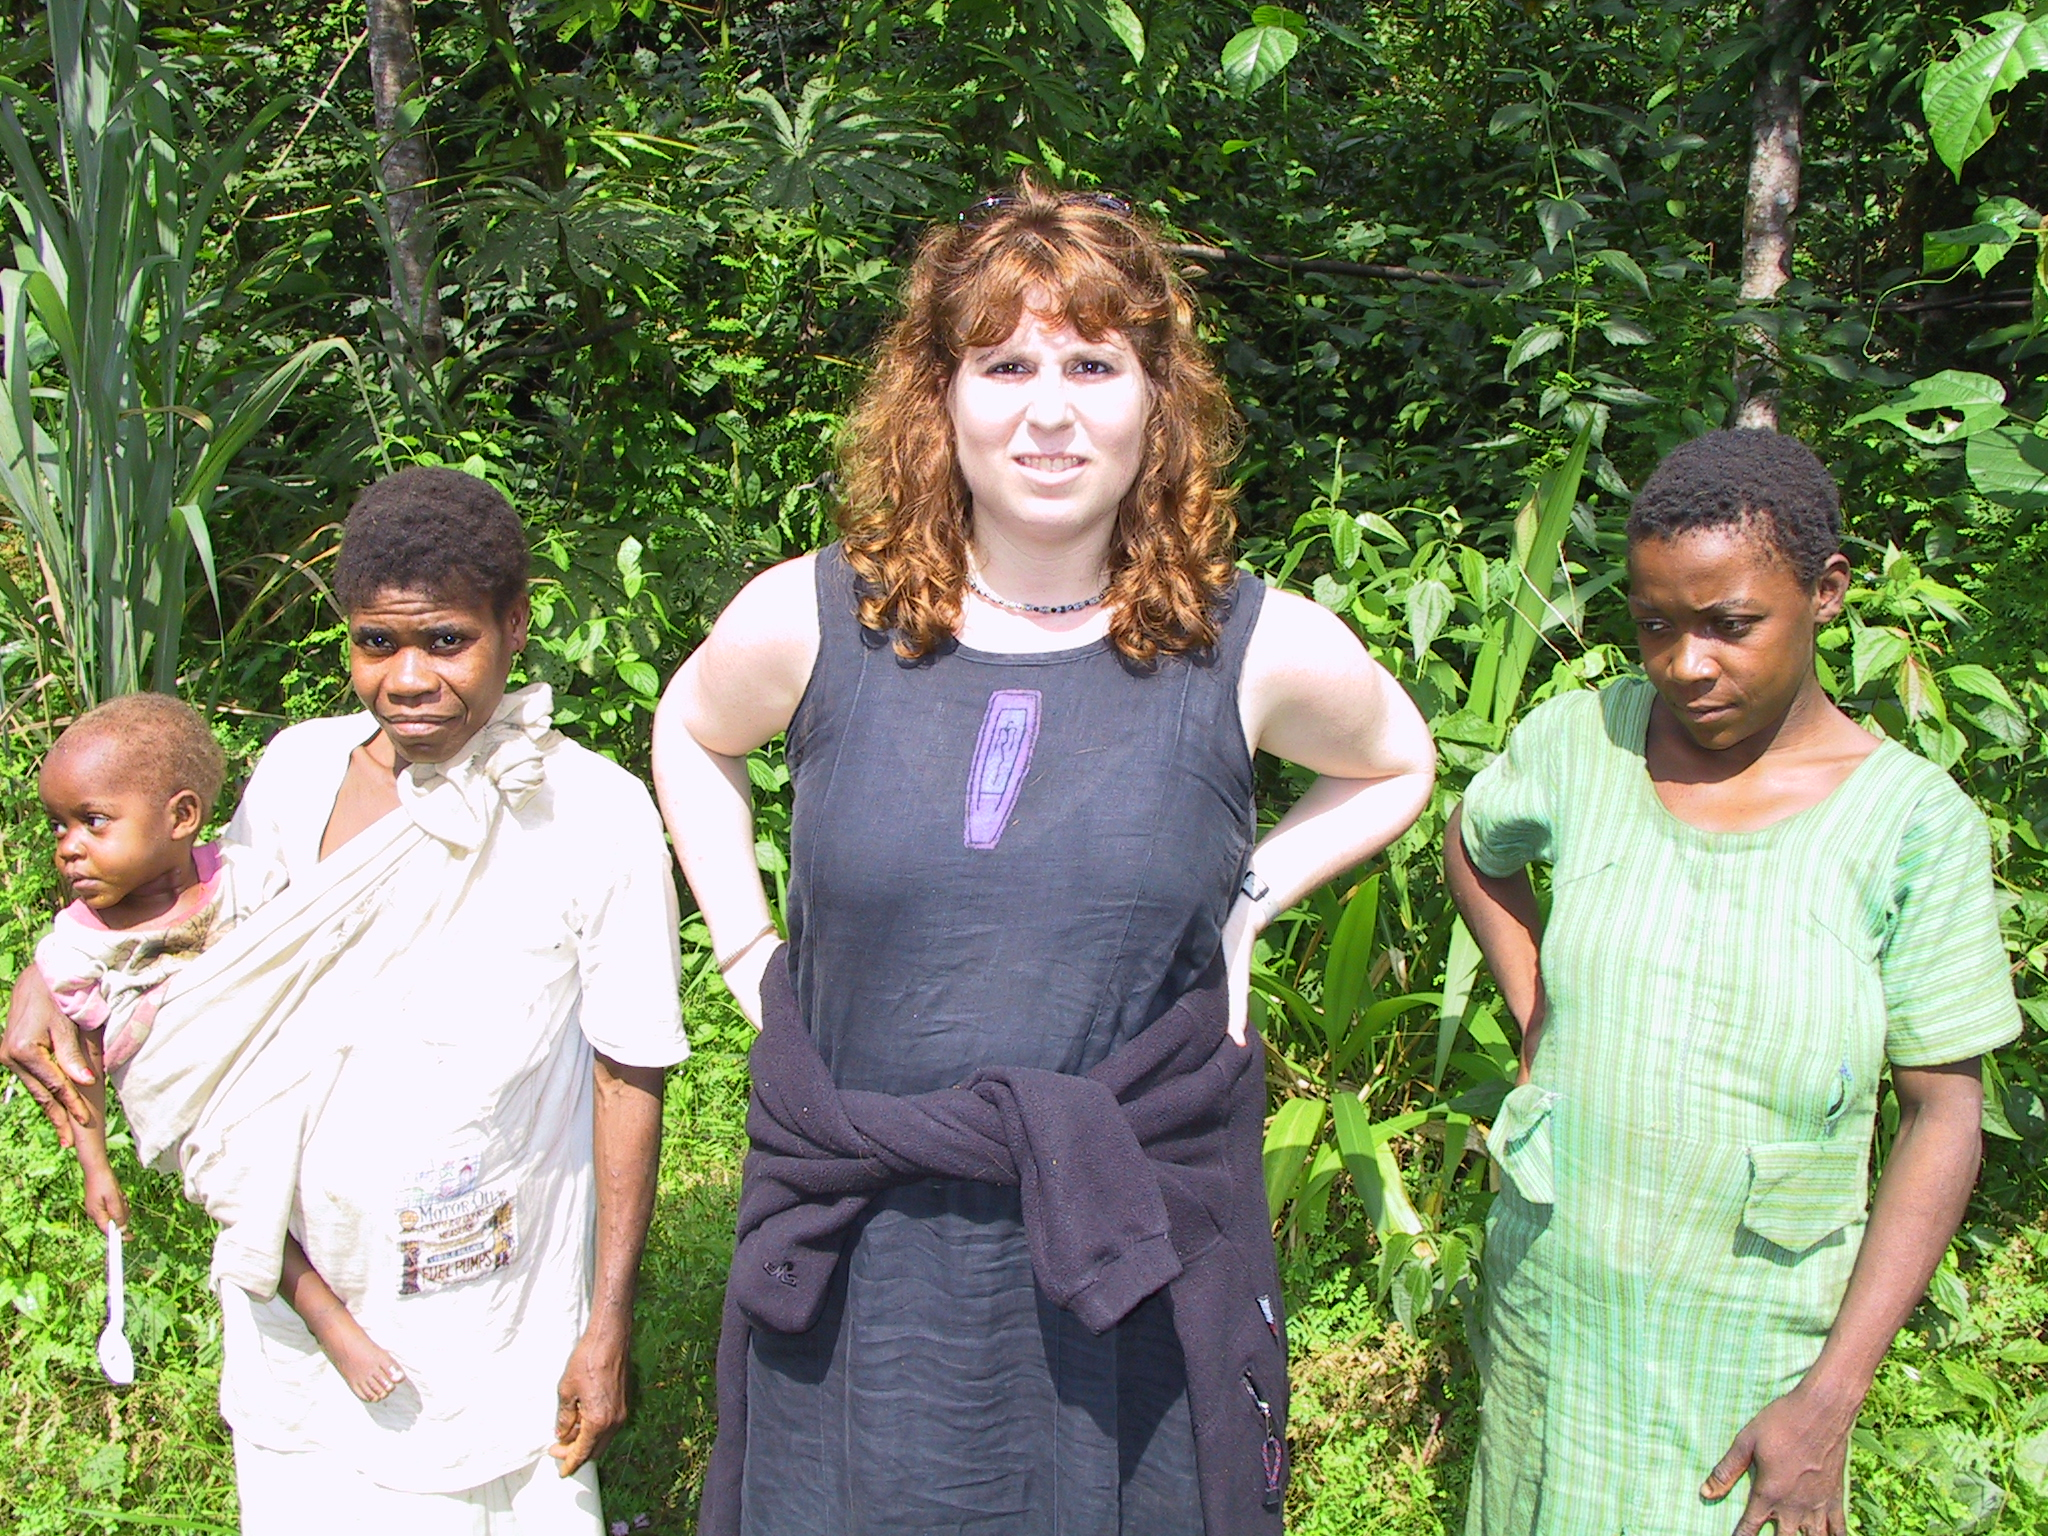 Researcher Sarah Tishkoff (center) with Pygmy women from a village in Cameroon